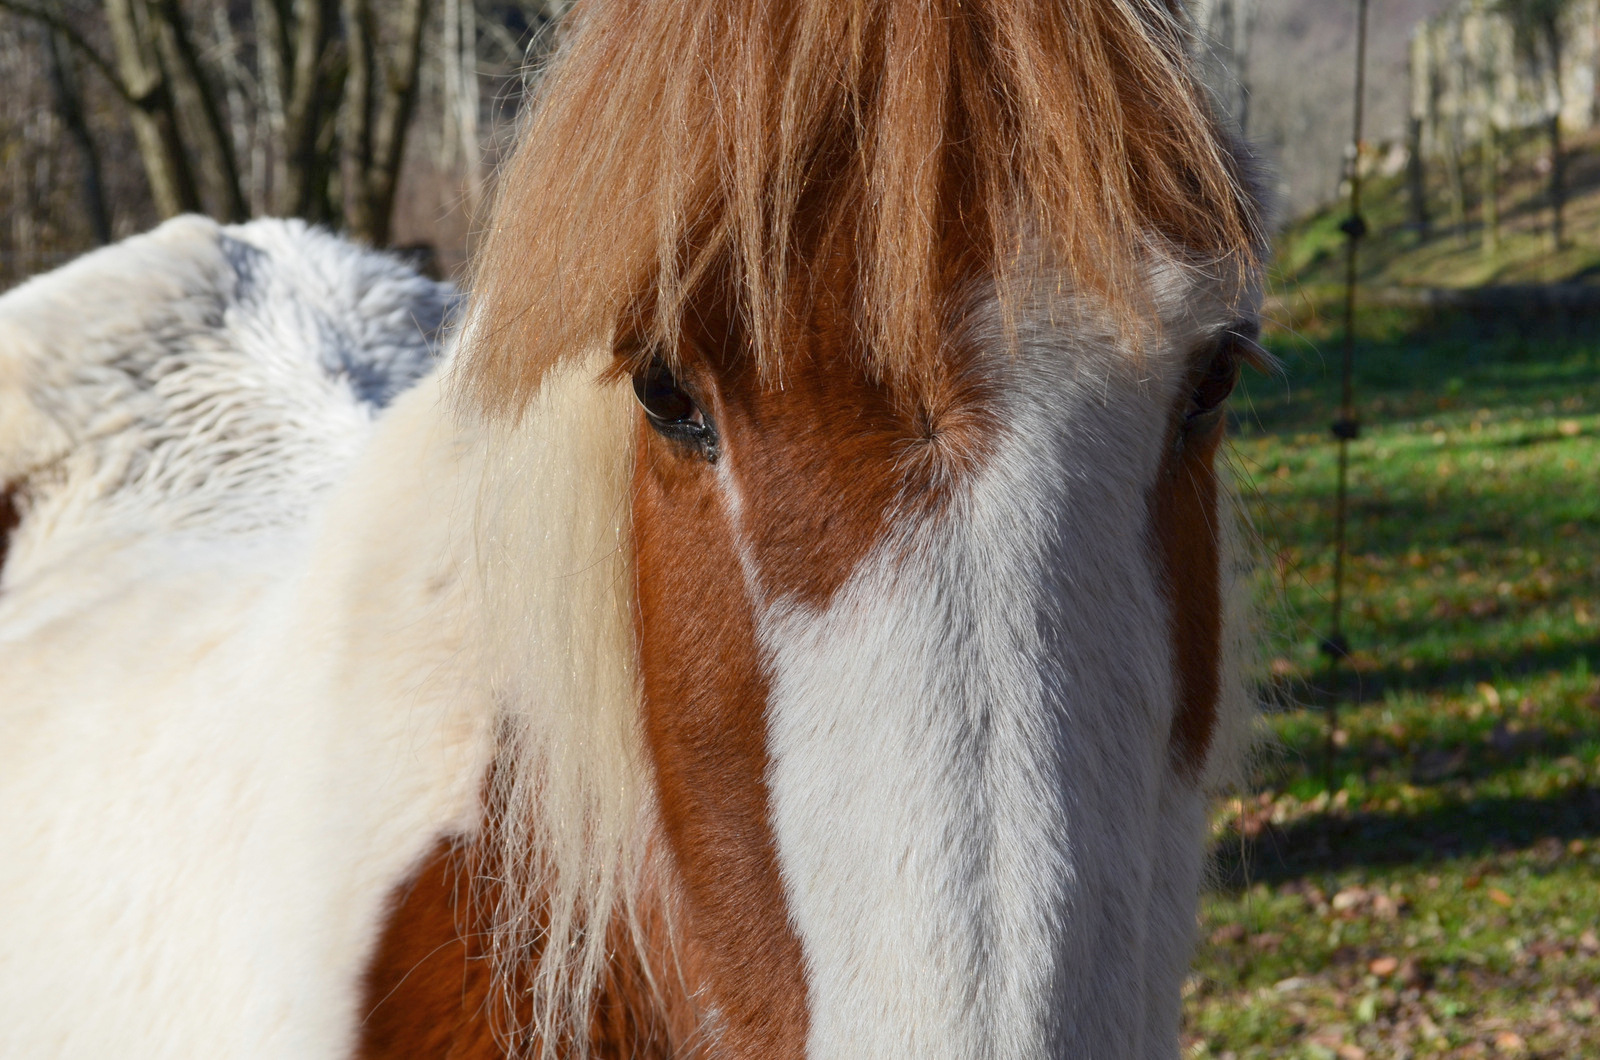 The beautiful Pequita, one of two rescued horses now living in peace here